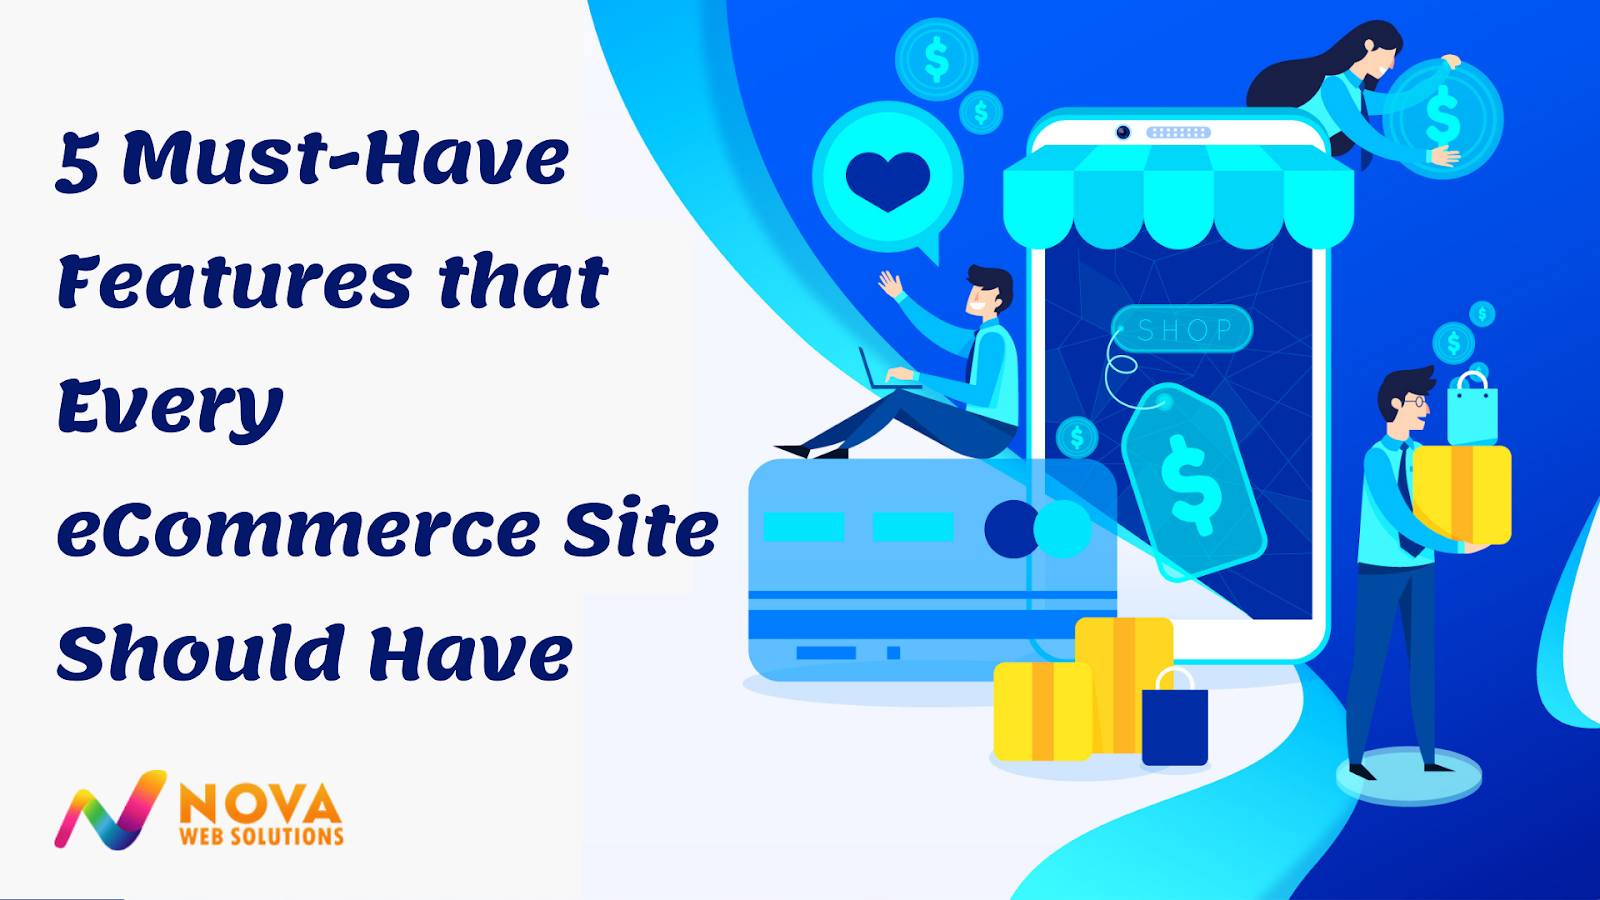 5 Must-Have Features that Every eCommerce Site Should Have